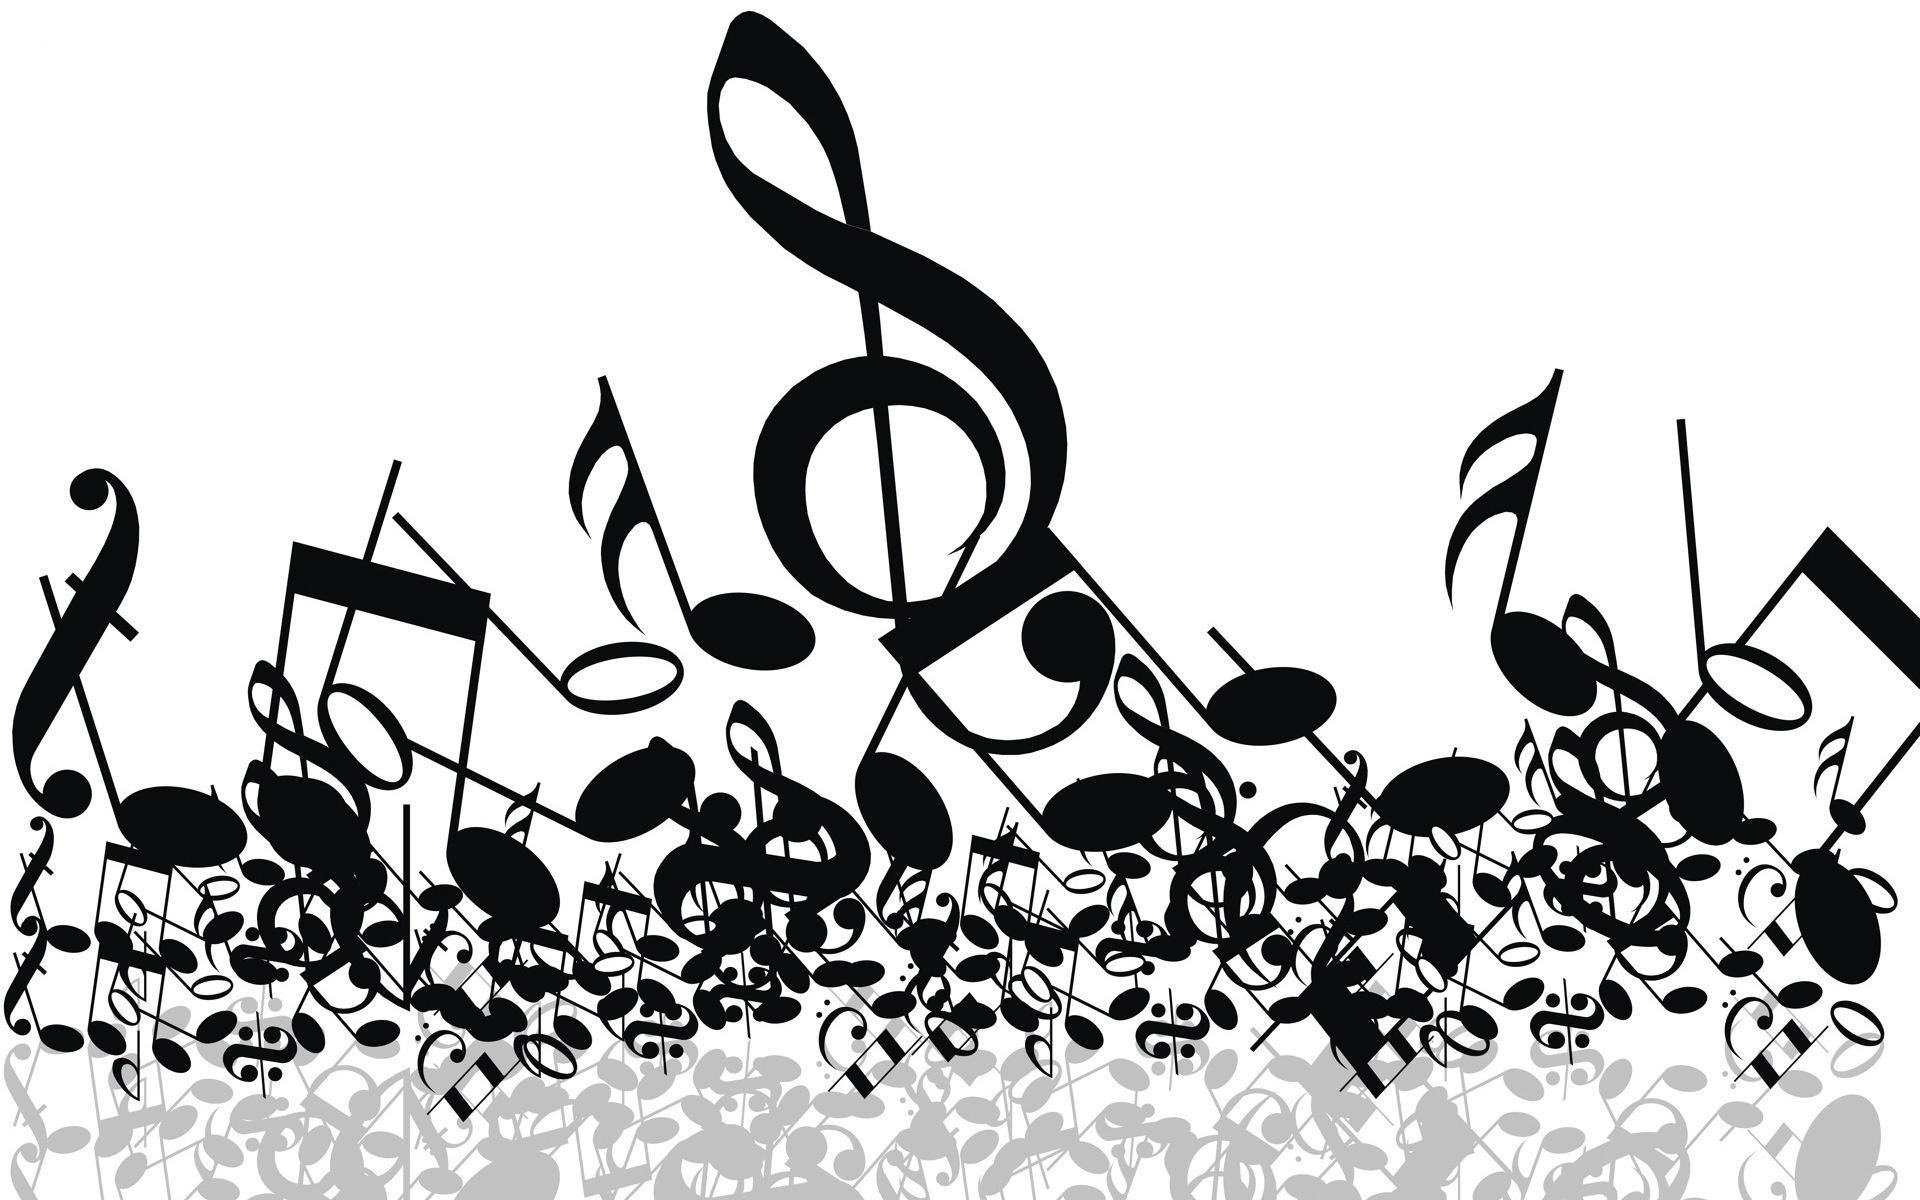 Free spring concert clipart band image.